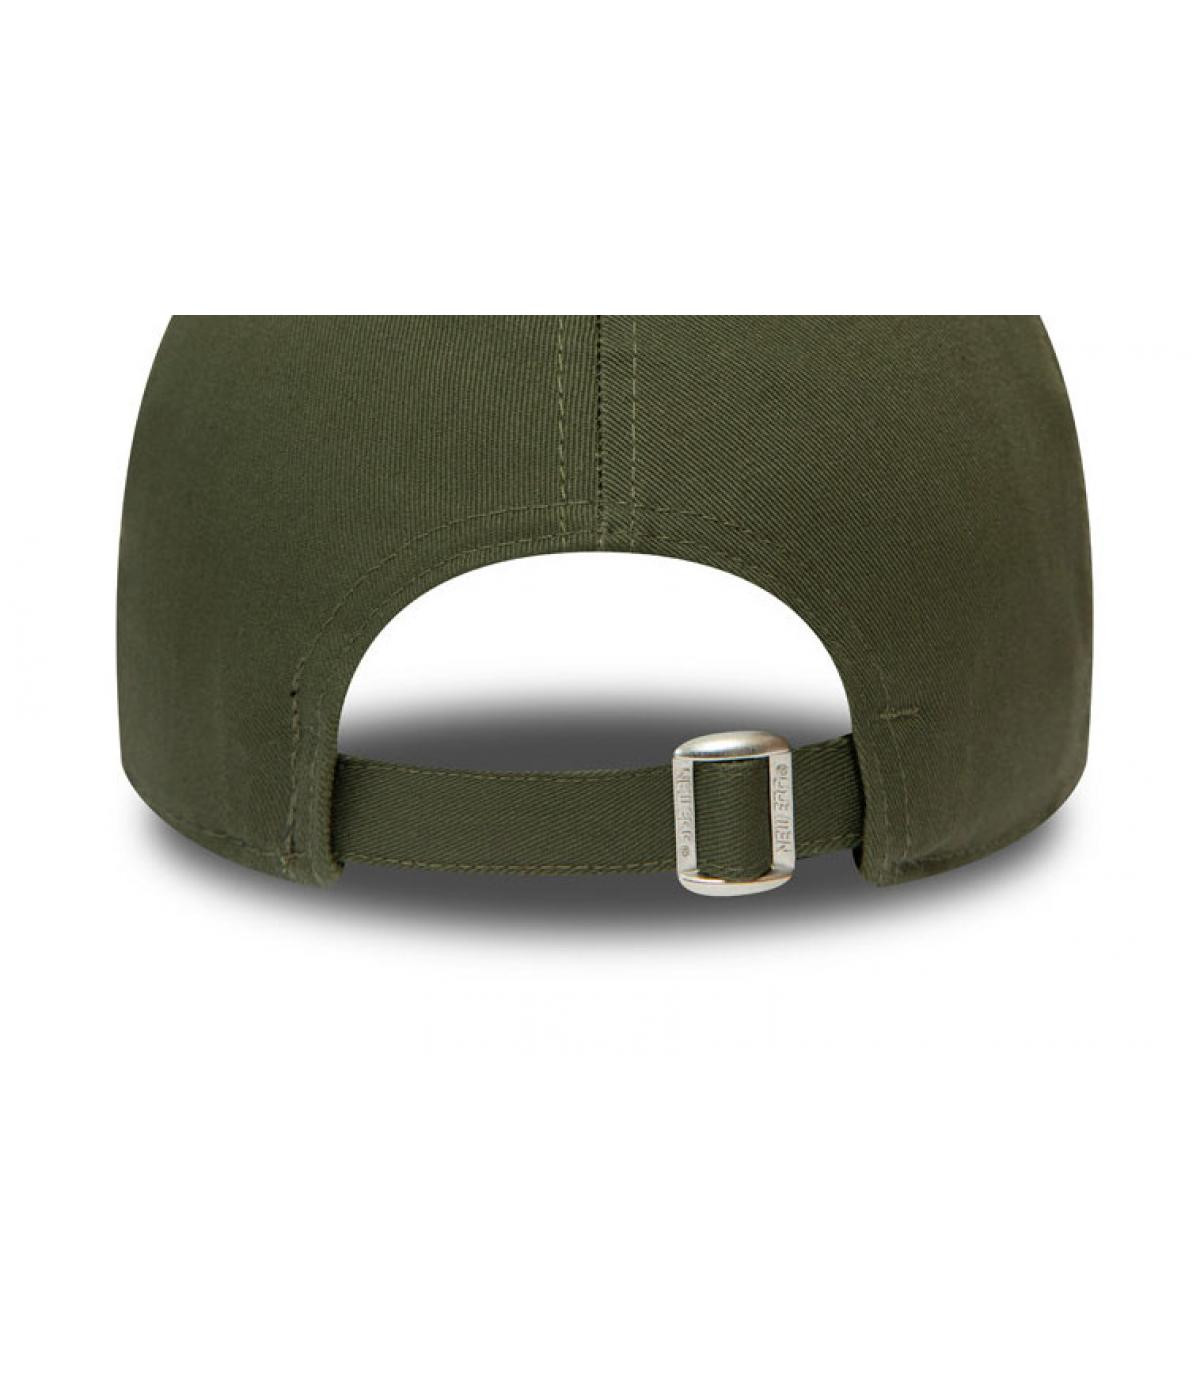 Détails Casquette Camo Infill 940 NY olive - image 3